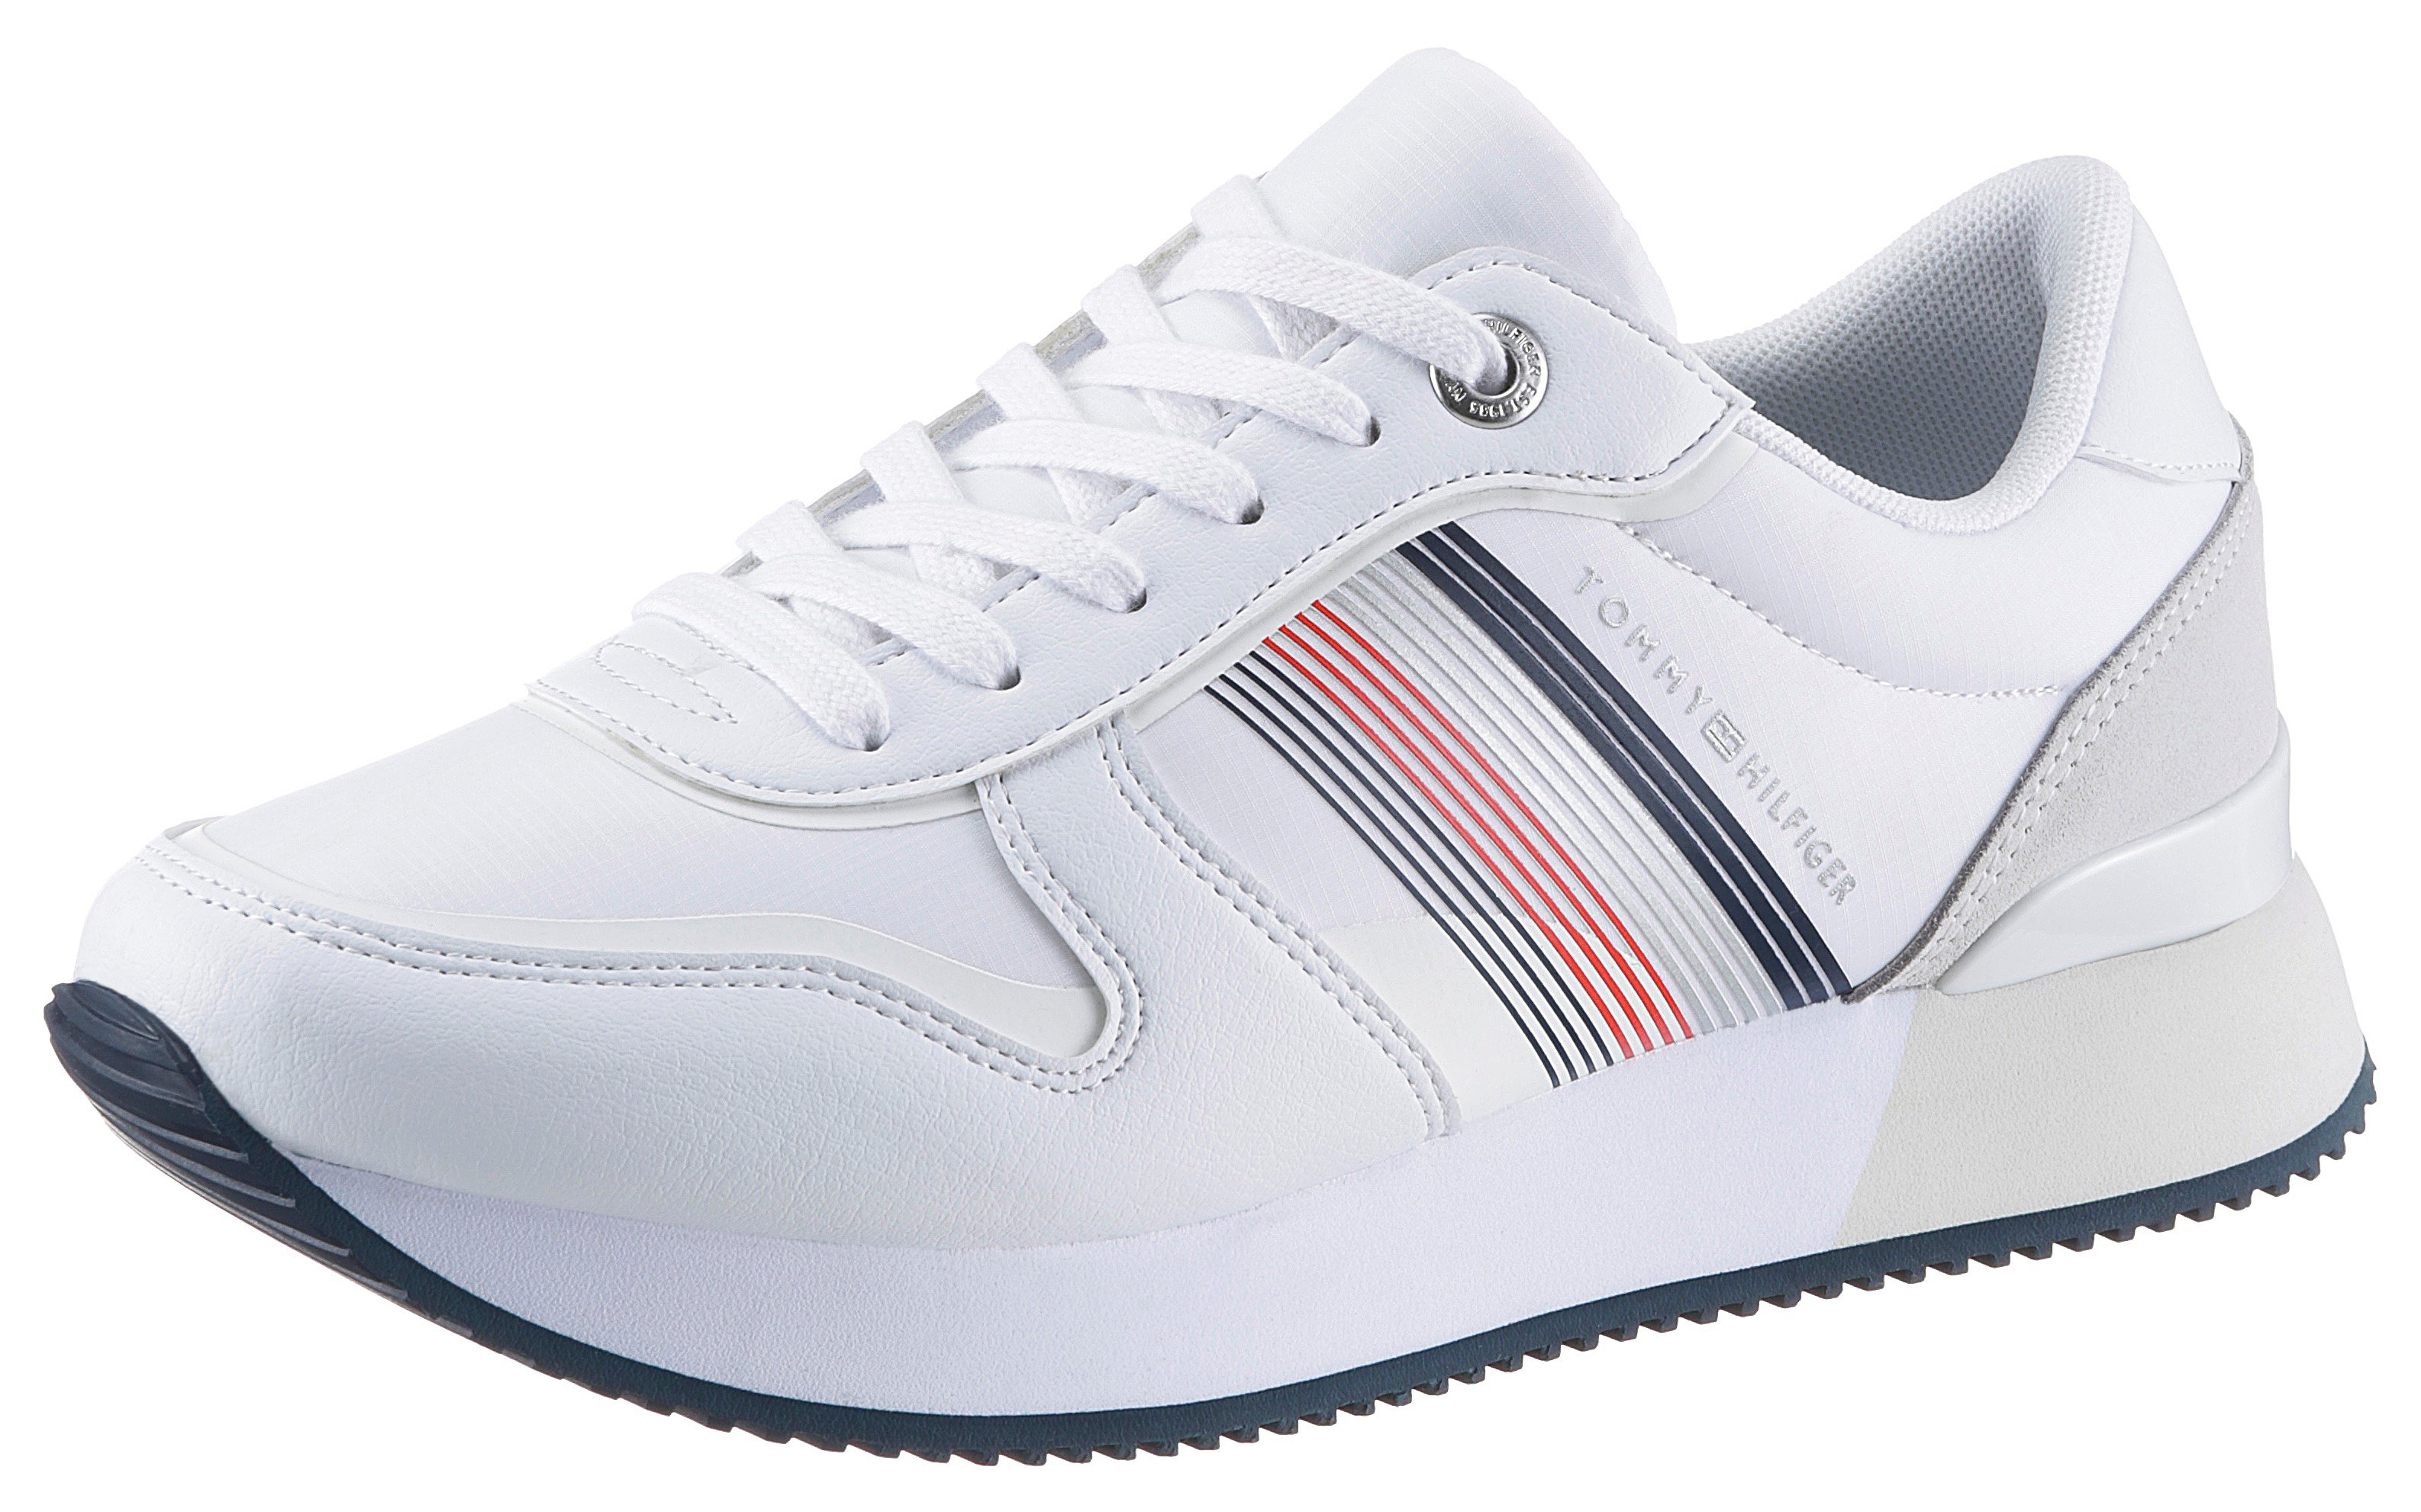 TOMMY HILFIGER plateausneakers »ACTIVE CITY SNEAKER; Model: ANNIE 2C3« veilig op otto.nl kopen